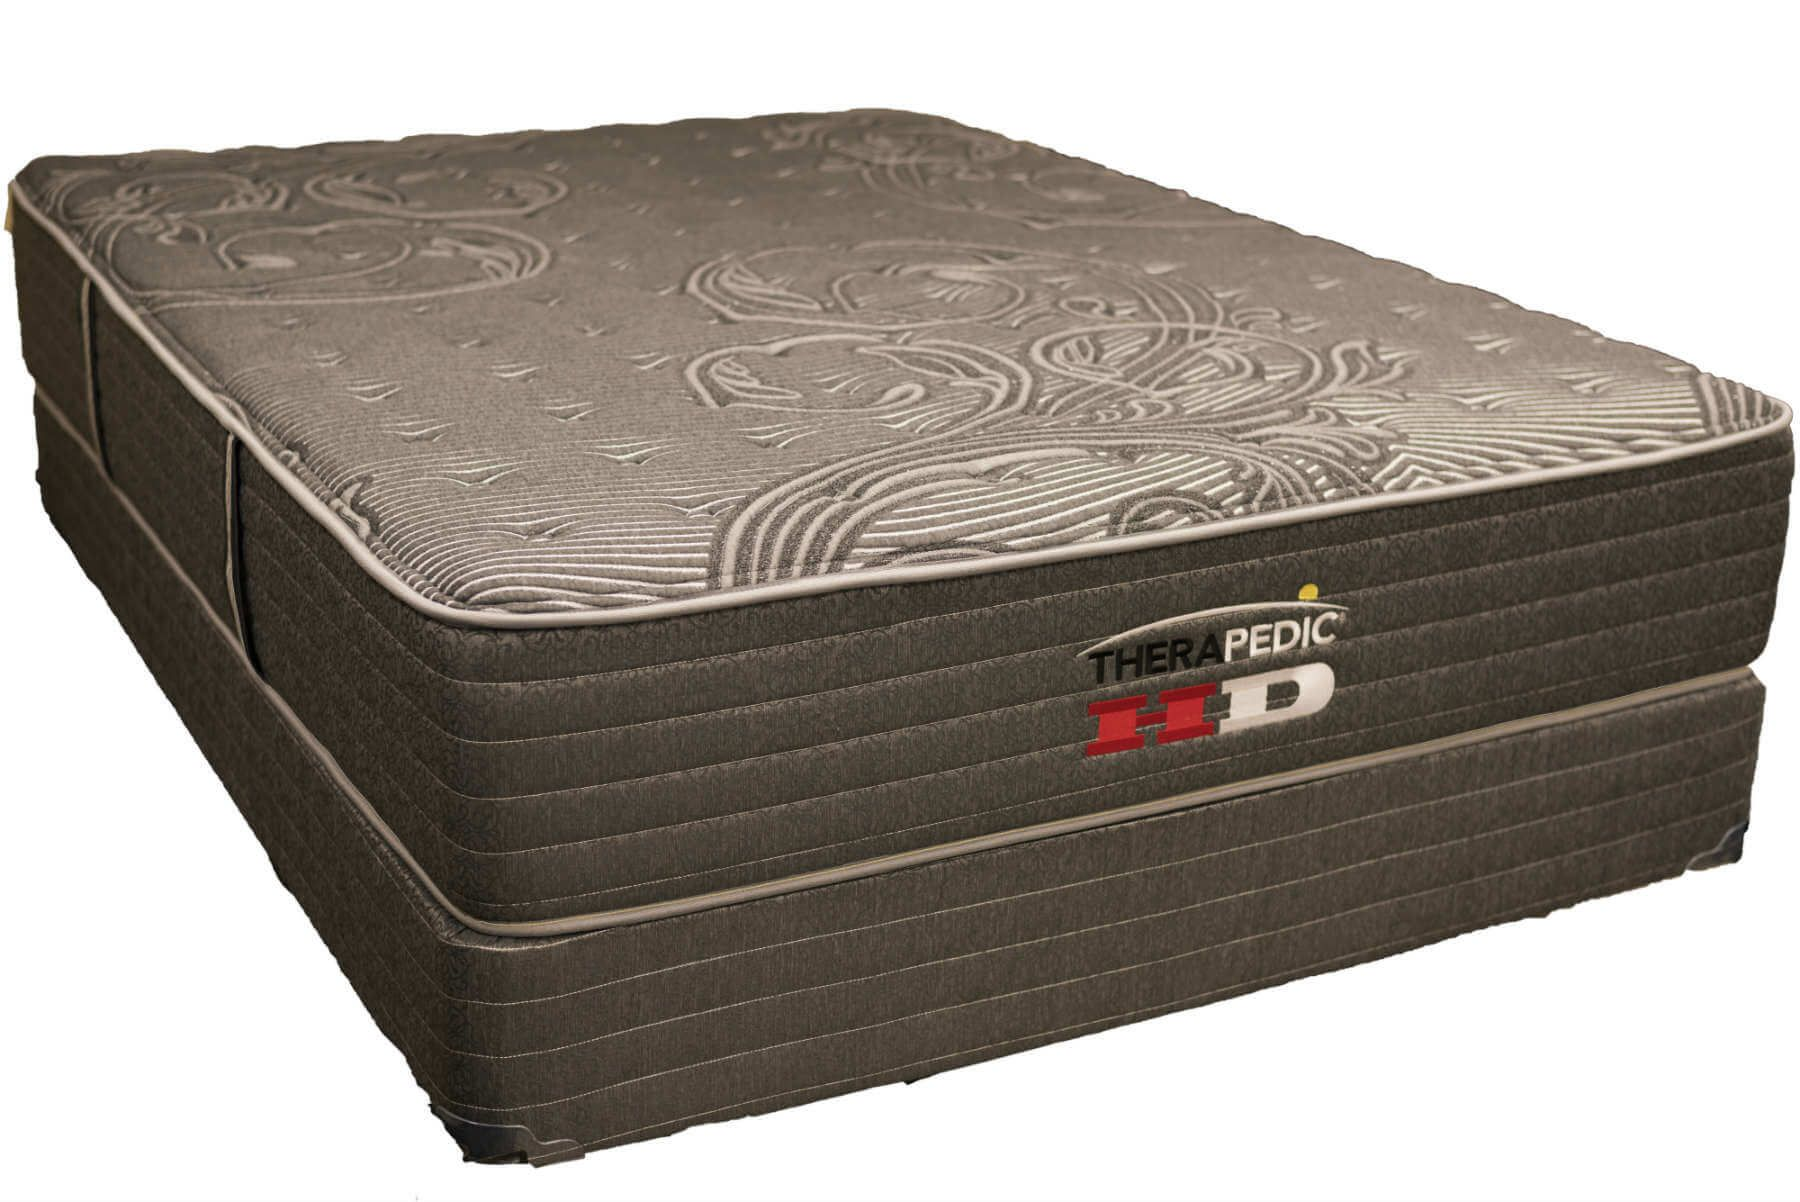 therapedic hd fortress firm mattress therapedic mattresses are